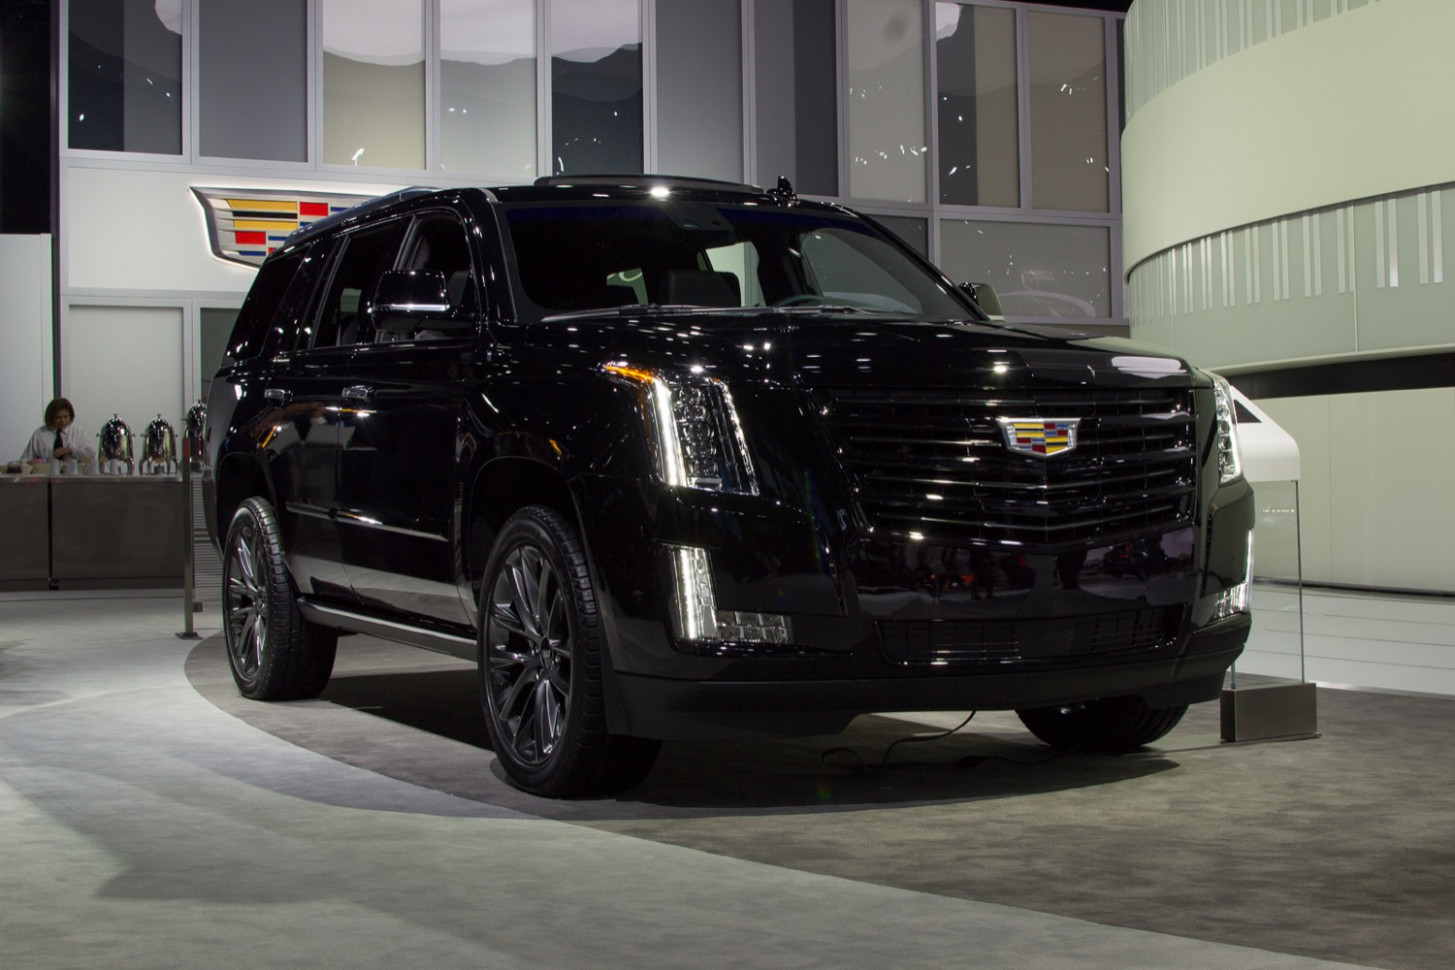 Price and Release date Next Generation 2022 Cadillac Escalade